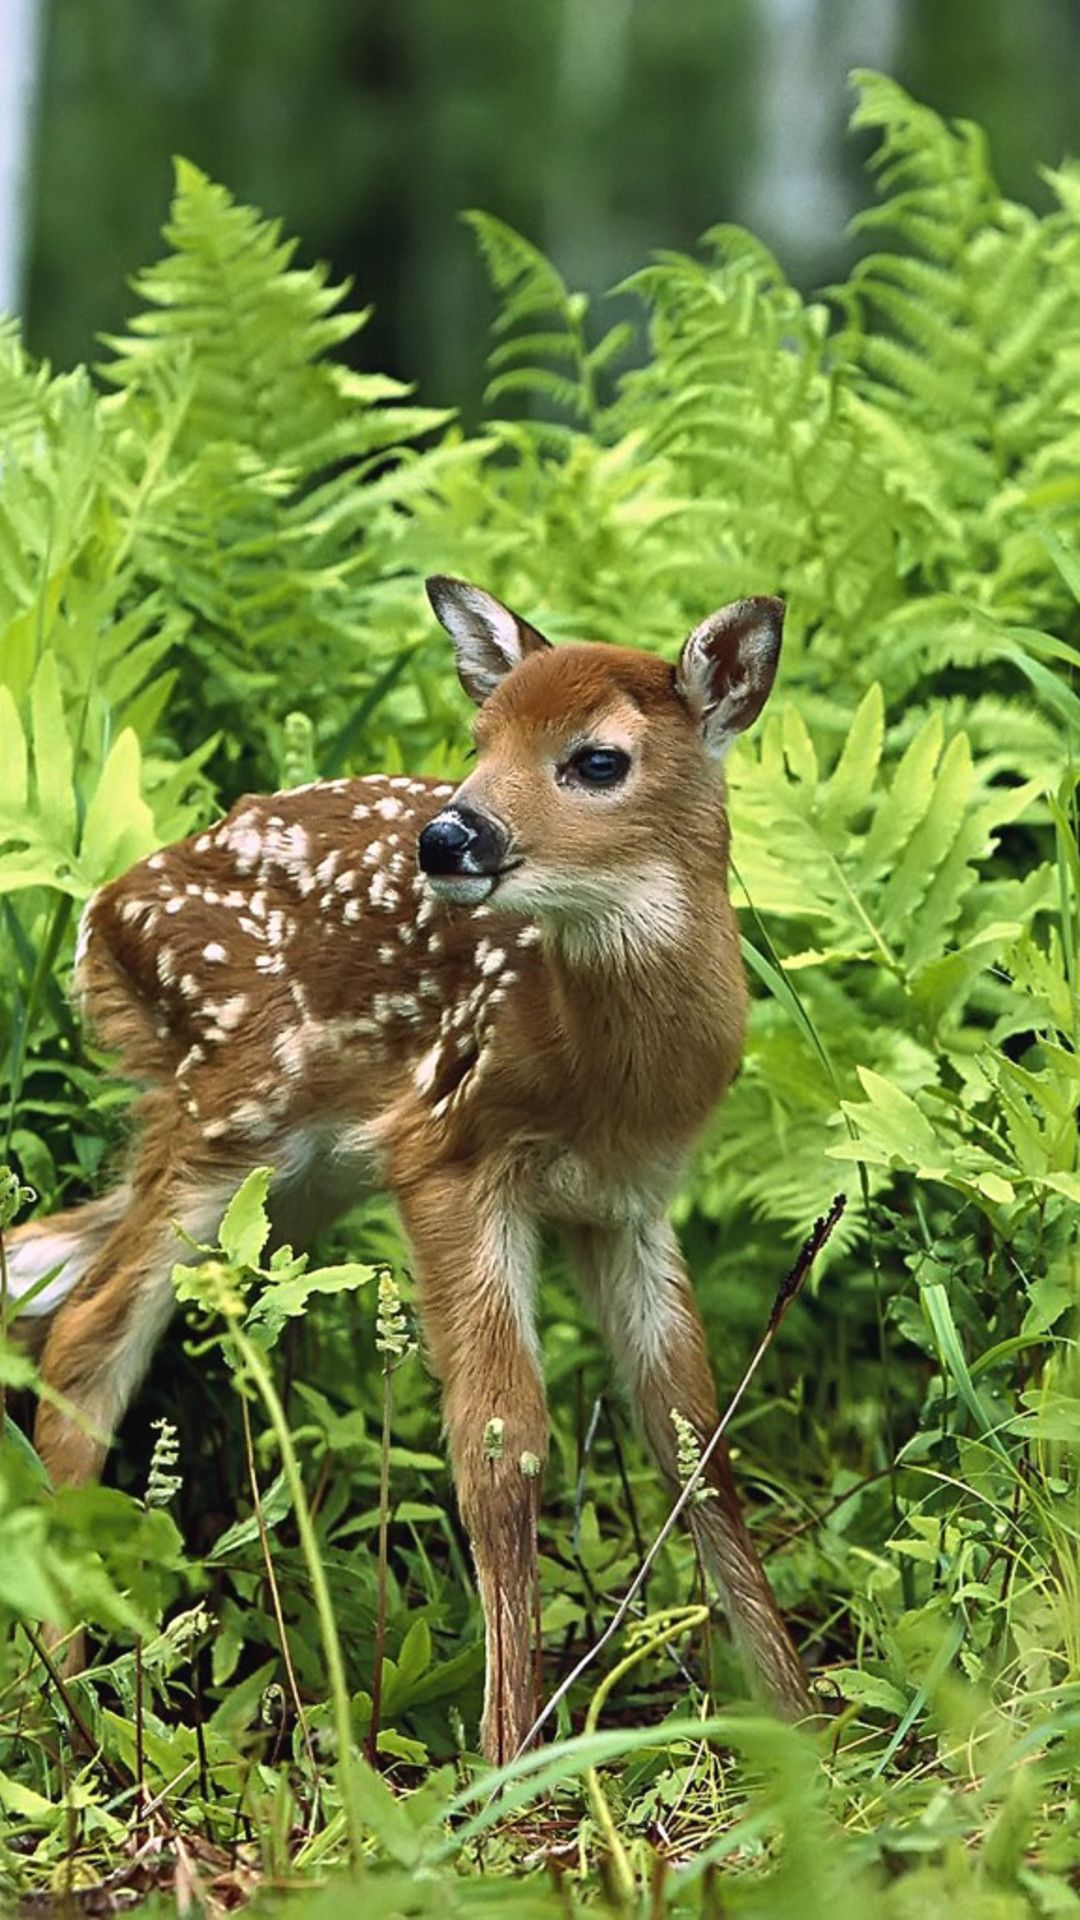 wallpaper download 1080x1920 a sweet baby deer in the grass in